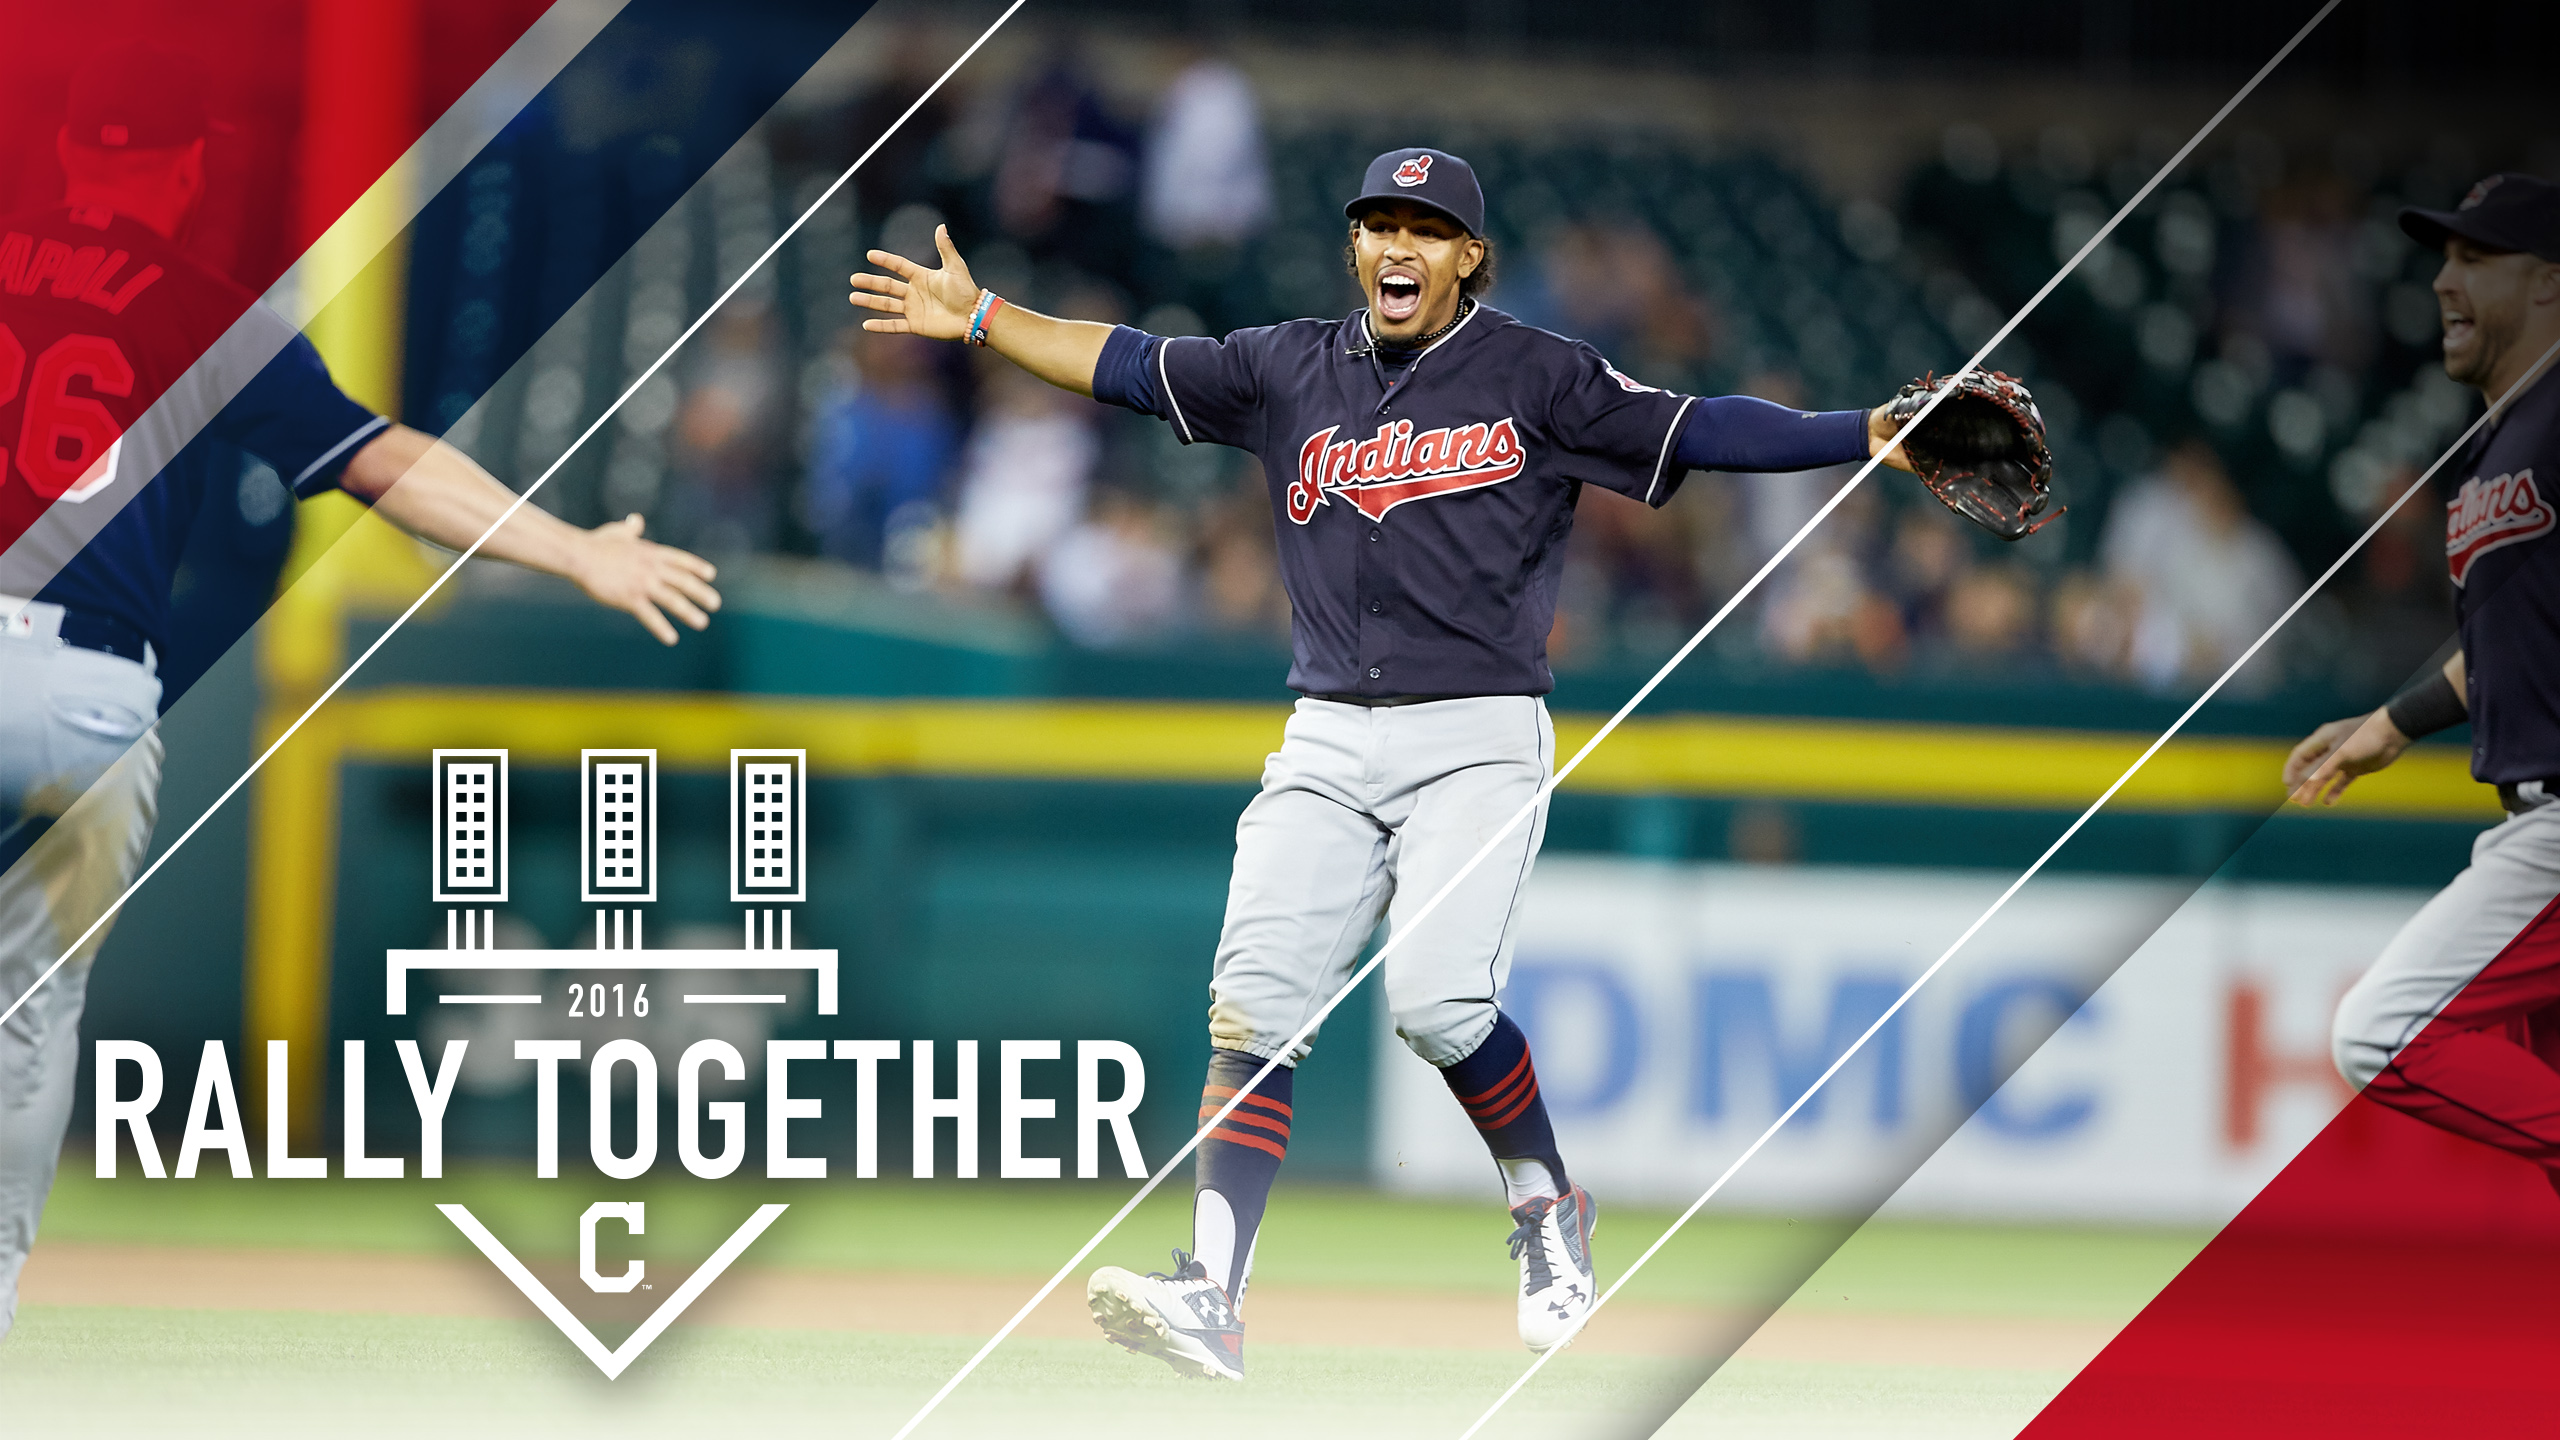 Free Full Screen Fall Wallpaper Cleveland Indians Wallpaper For Desktop Pixelstalk Net